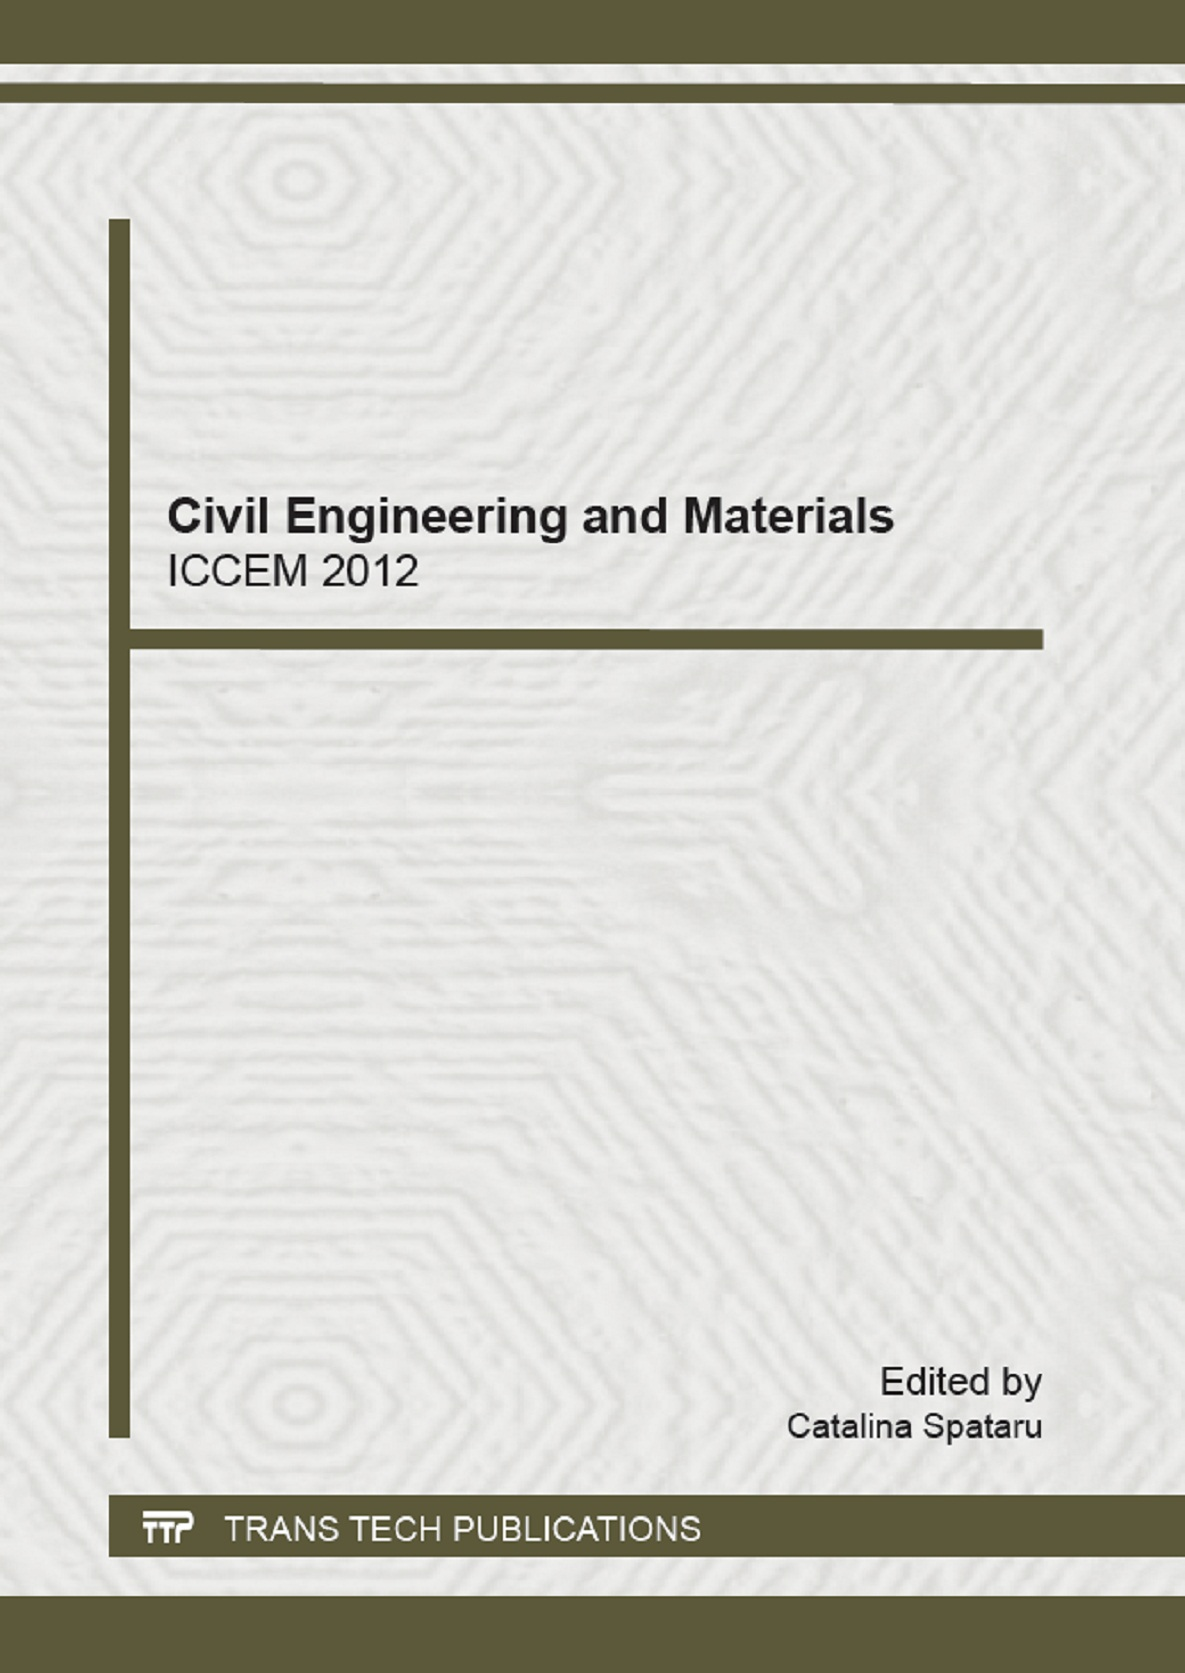 Civil Engineering and Materials